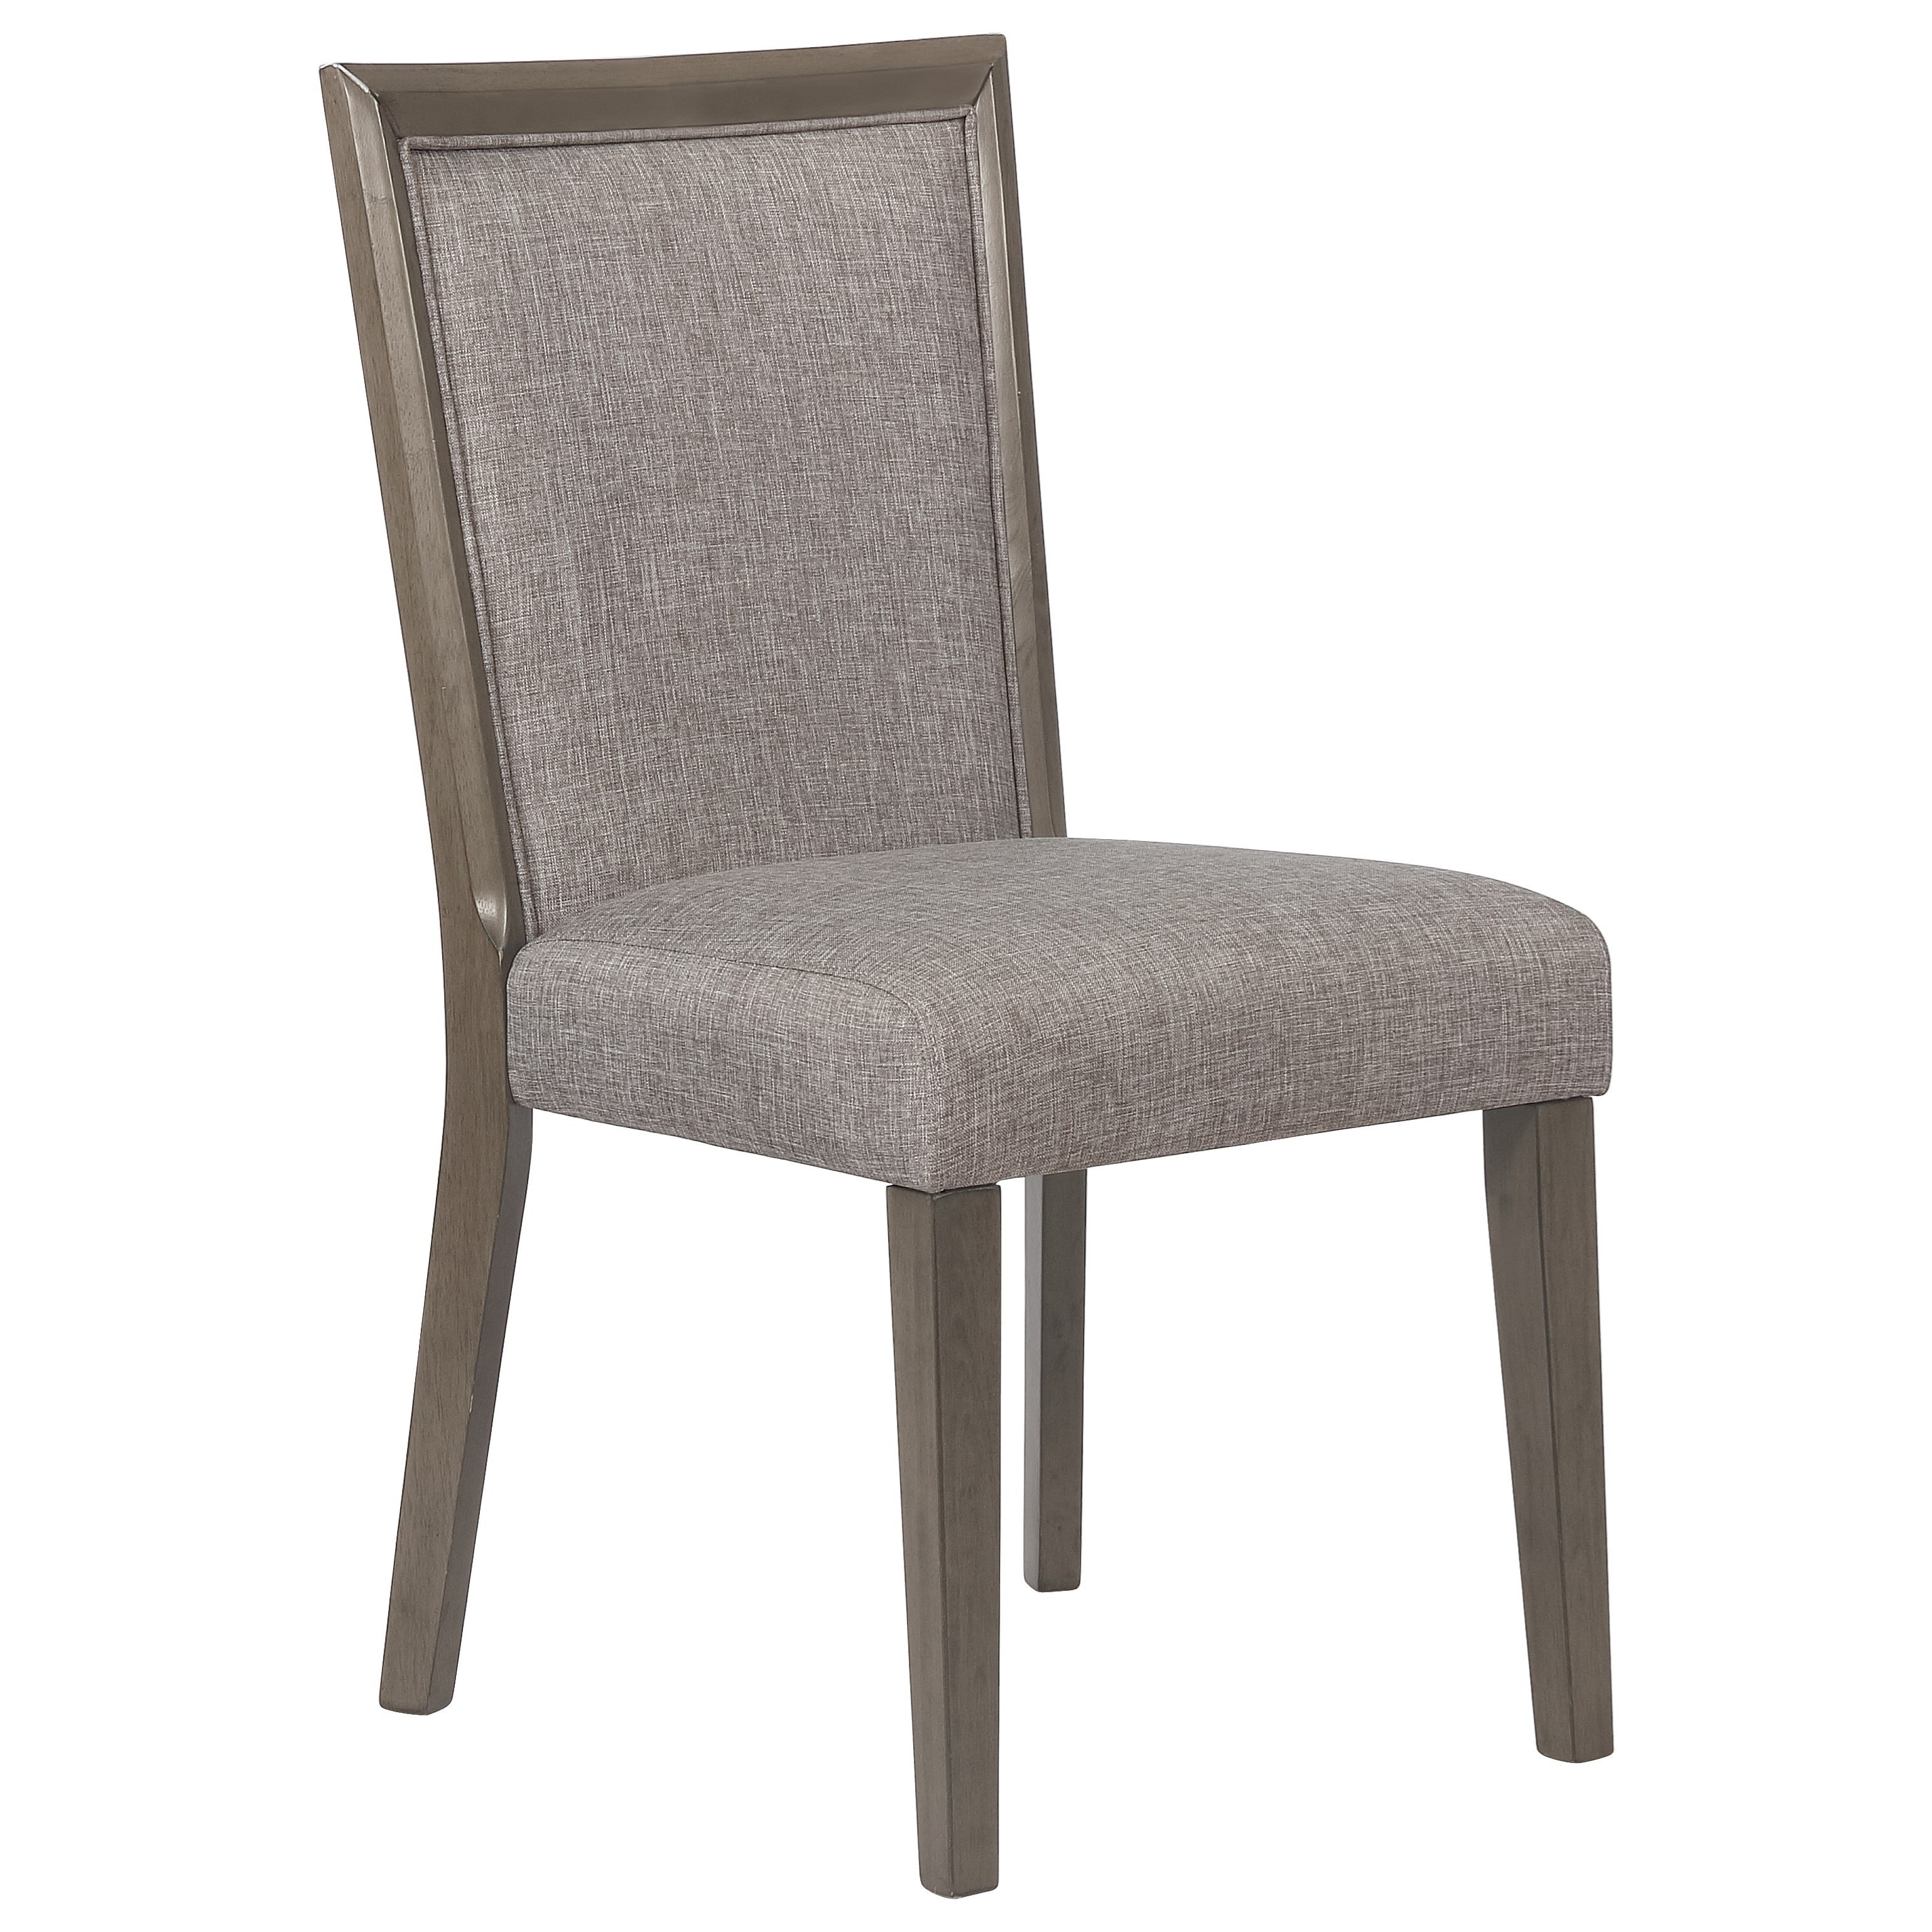 Primm Primm Side Chair by Powell at Westrich Furniture & Appliances